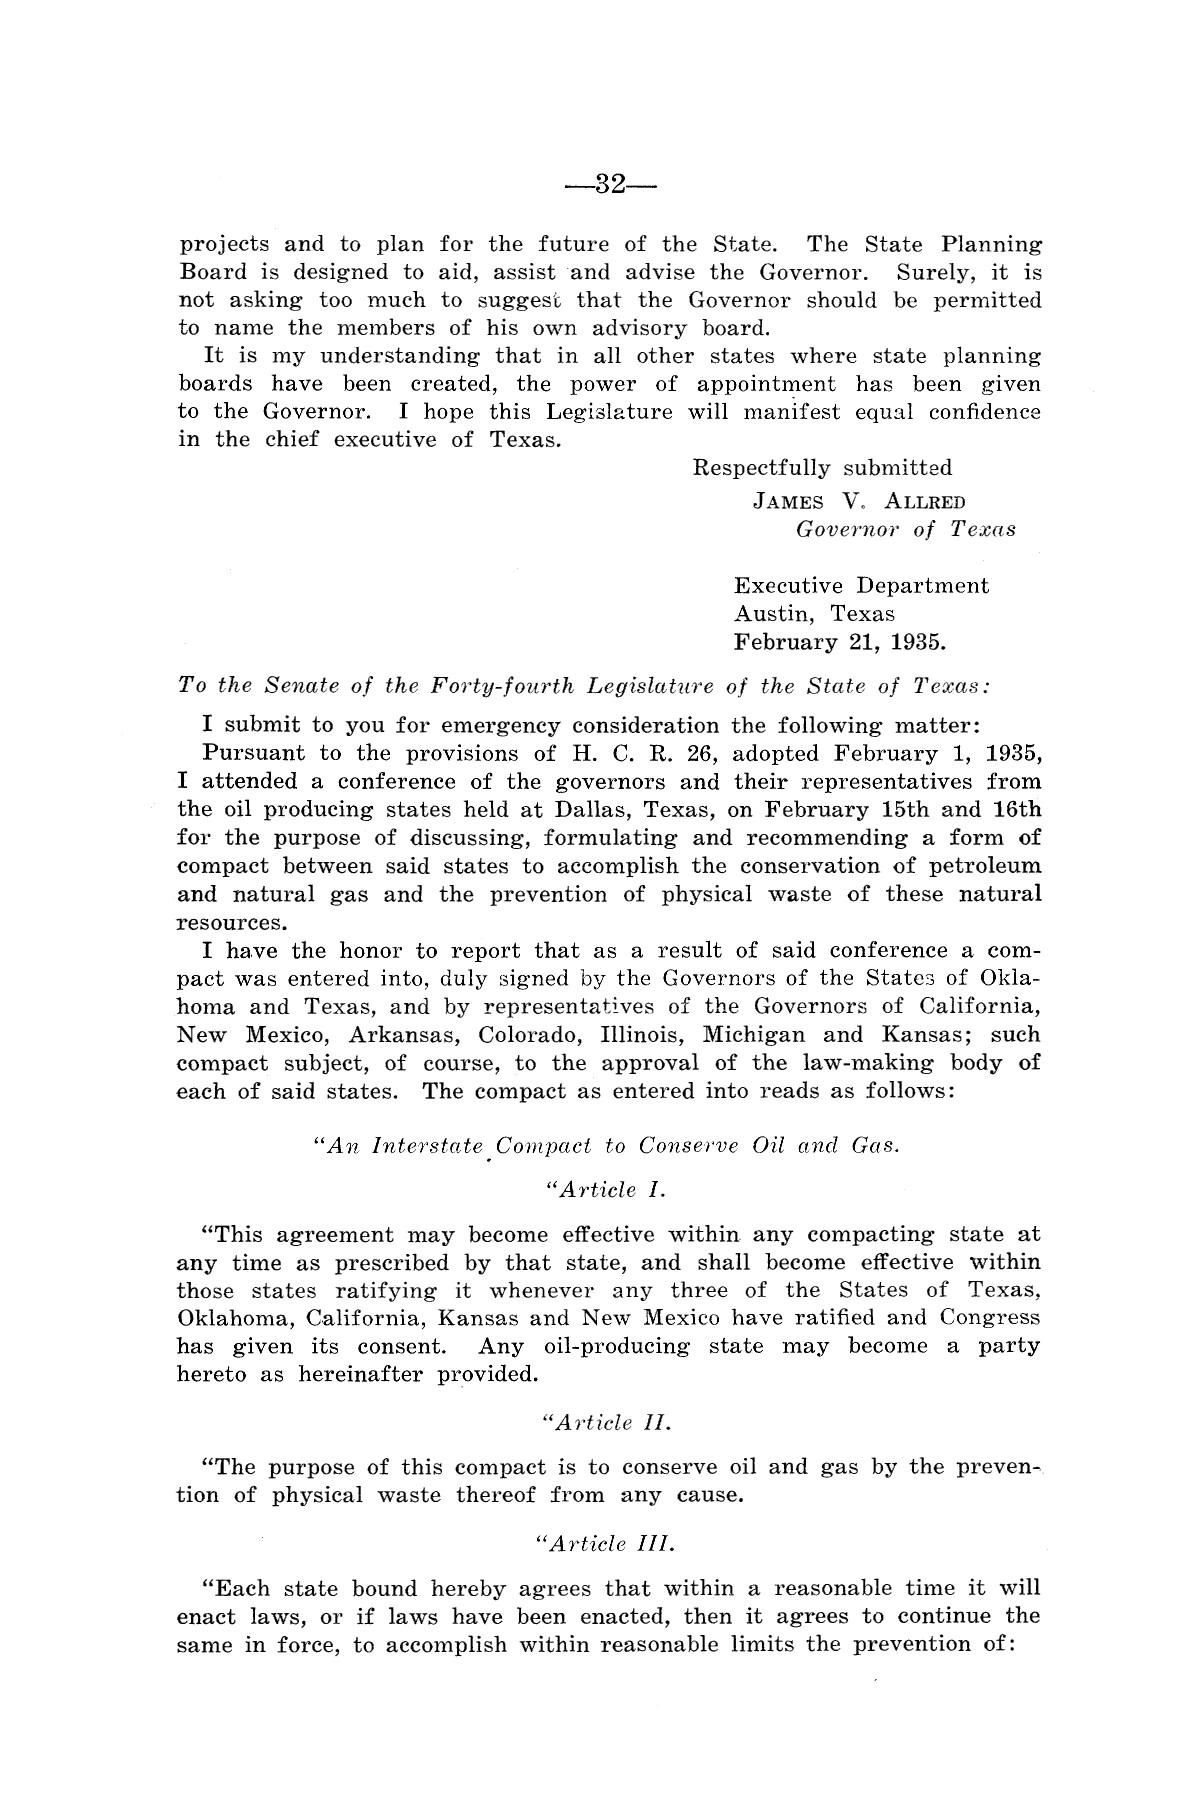 Legislative Messages of Hon. James V. Allred, Governor of Texas 1935-1939                                                                                                      [Sequence #]: 31 of 263